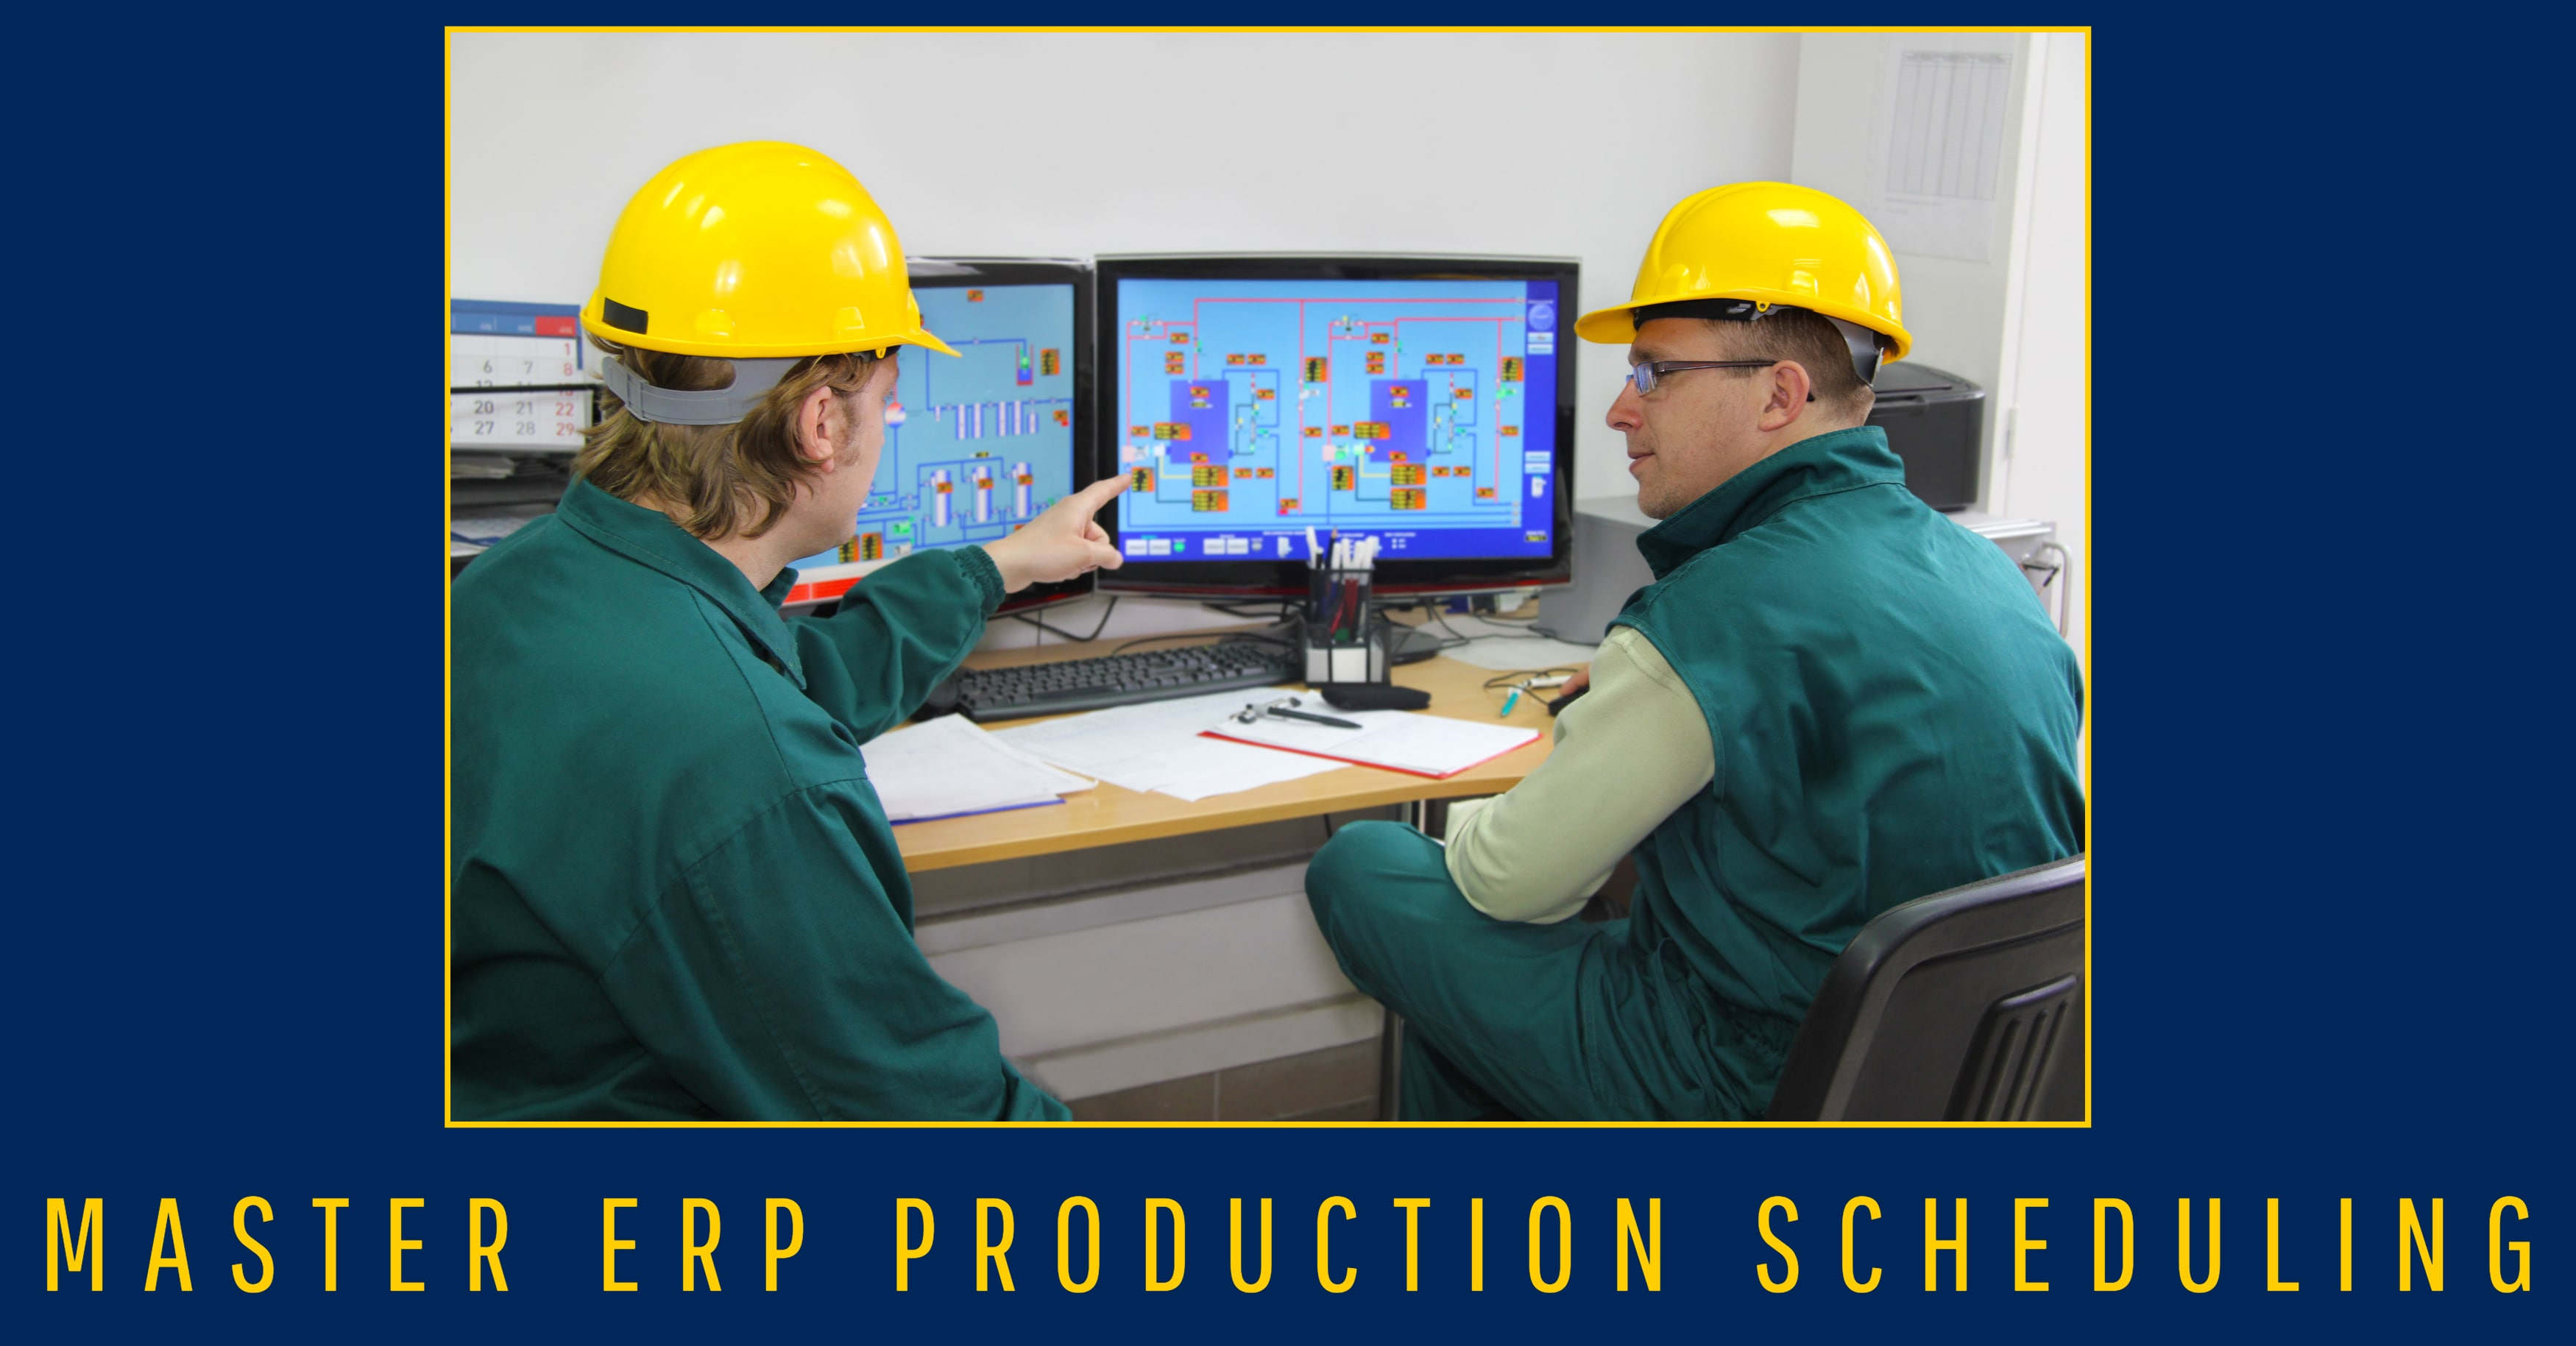 Master ERP Production Scheduling